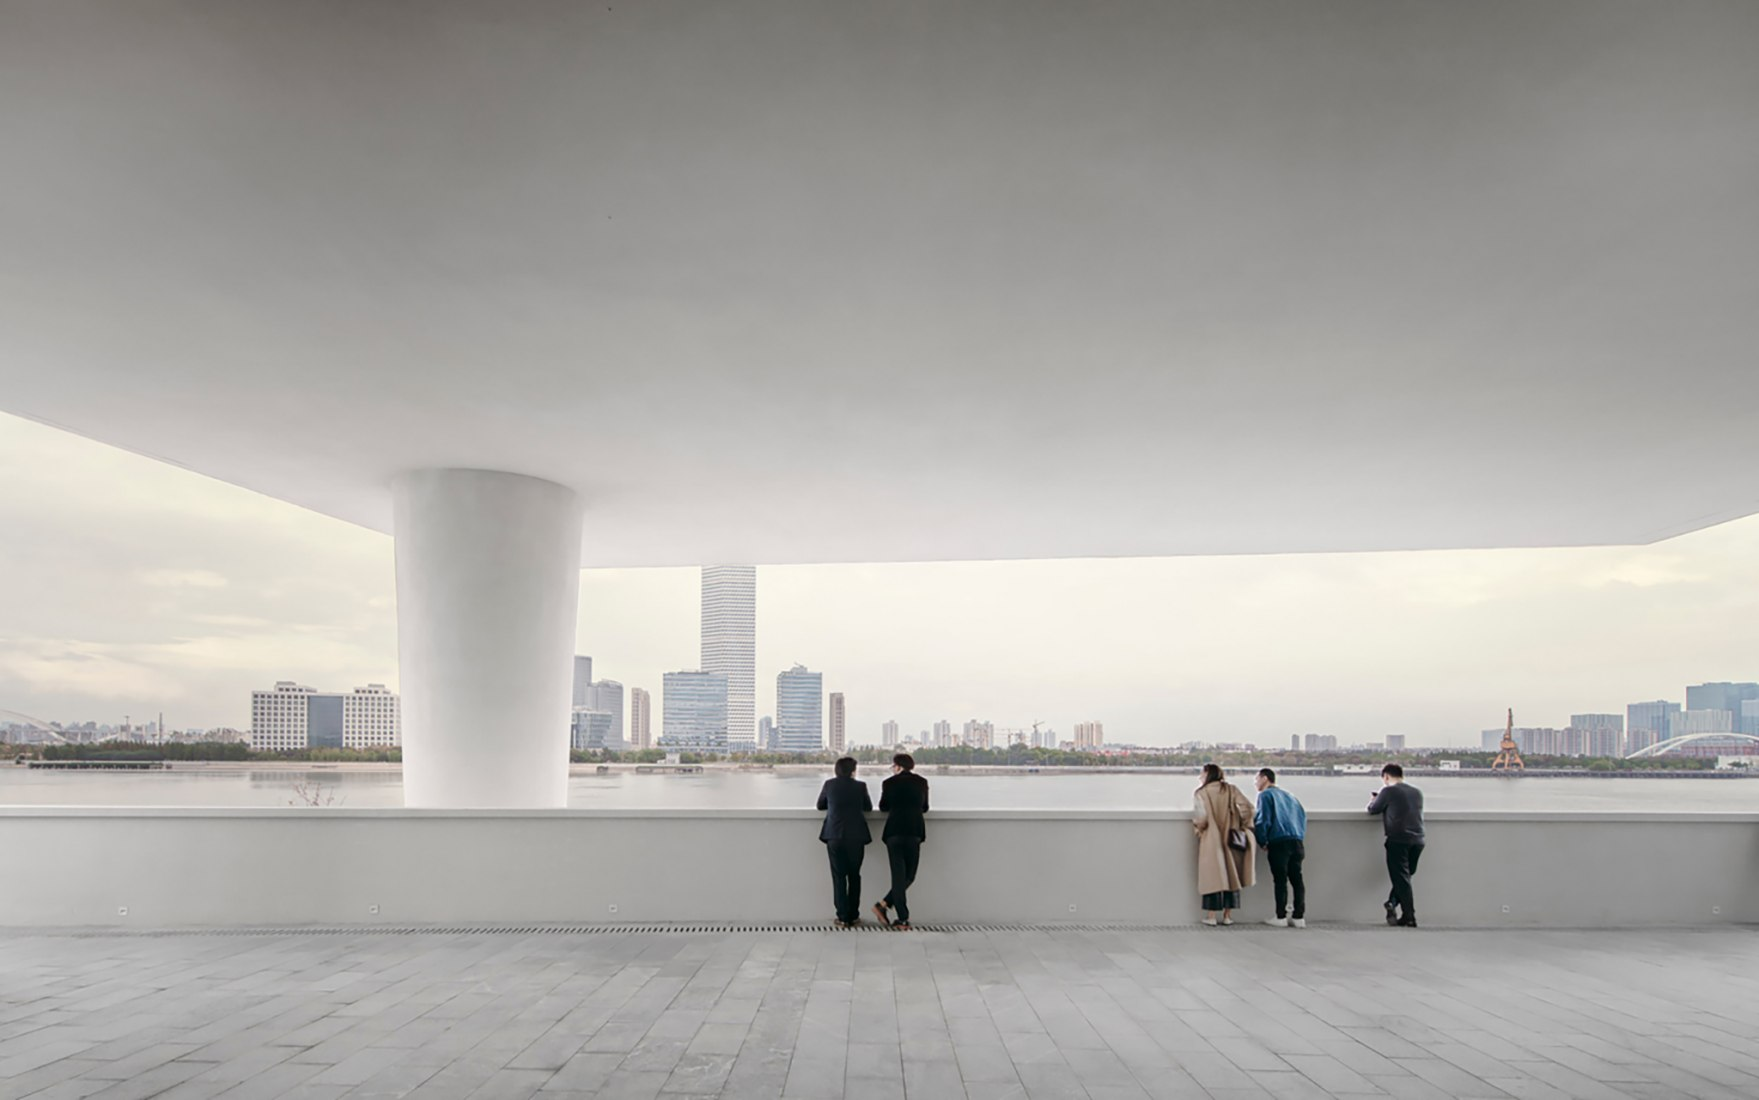 West Bund Museum by David Chipperfield Architects. Photograph by Simon Menges